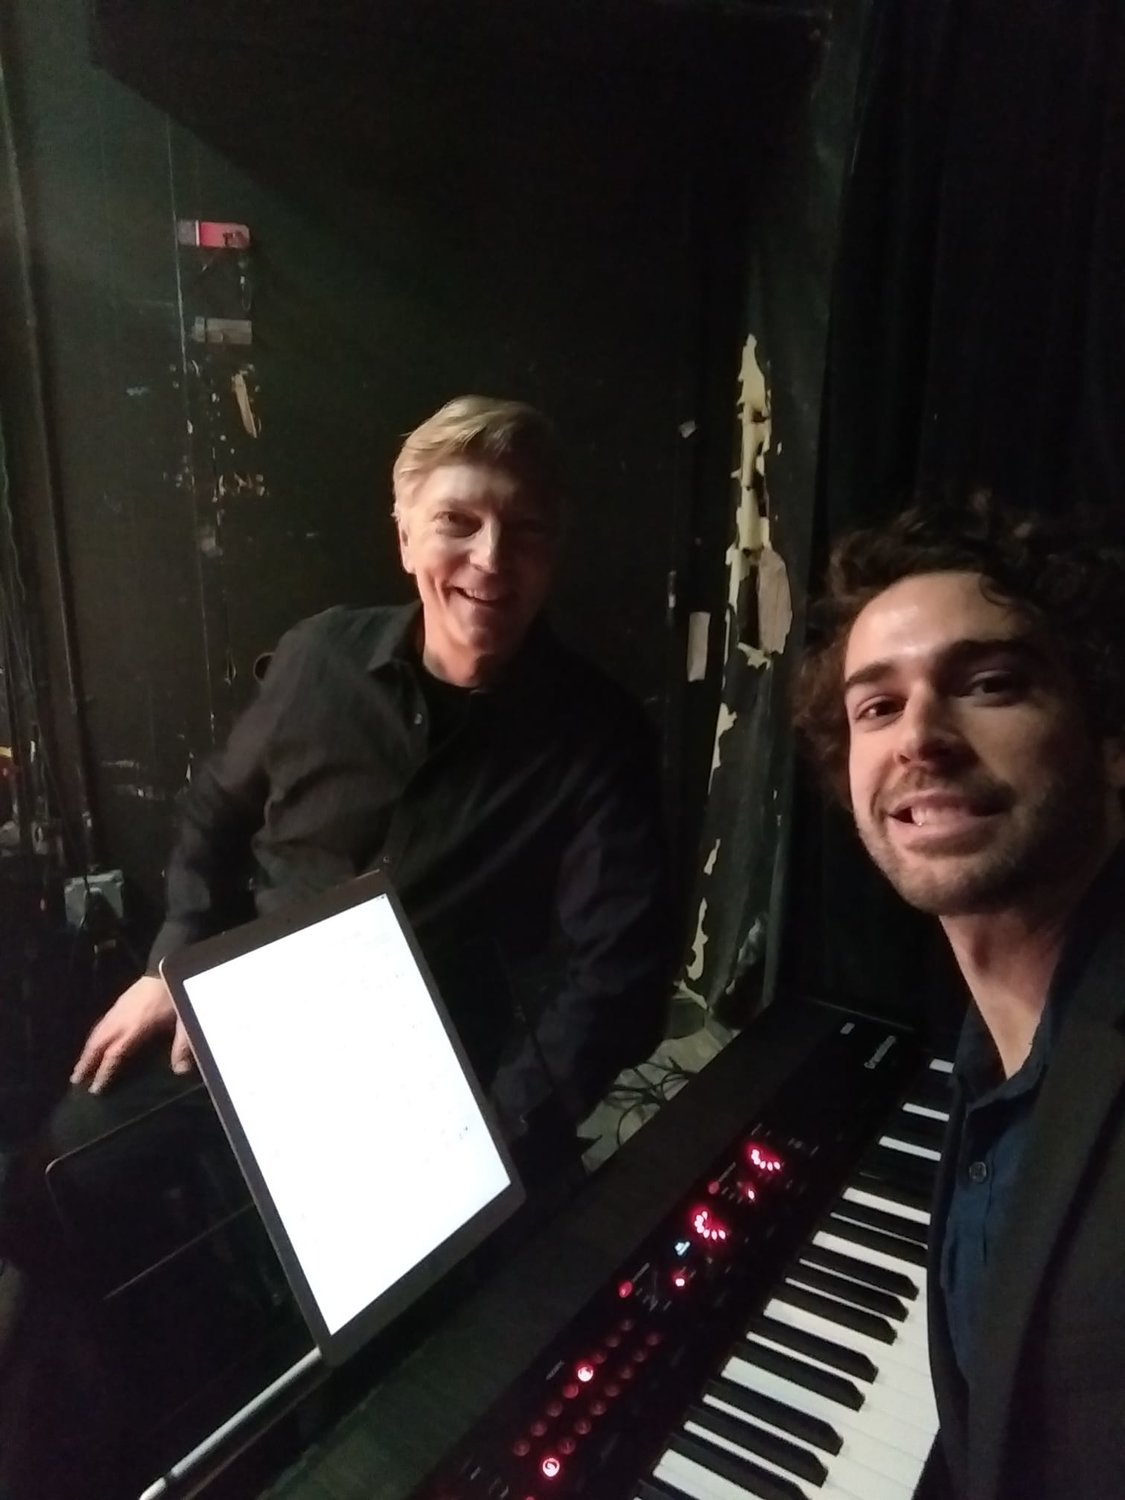 Mark Klett, right, with British composer and conductor Alastair King in New York City.